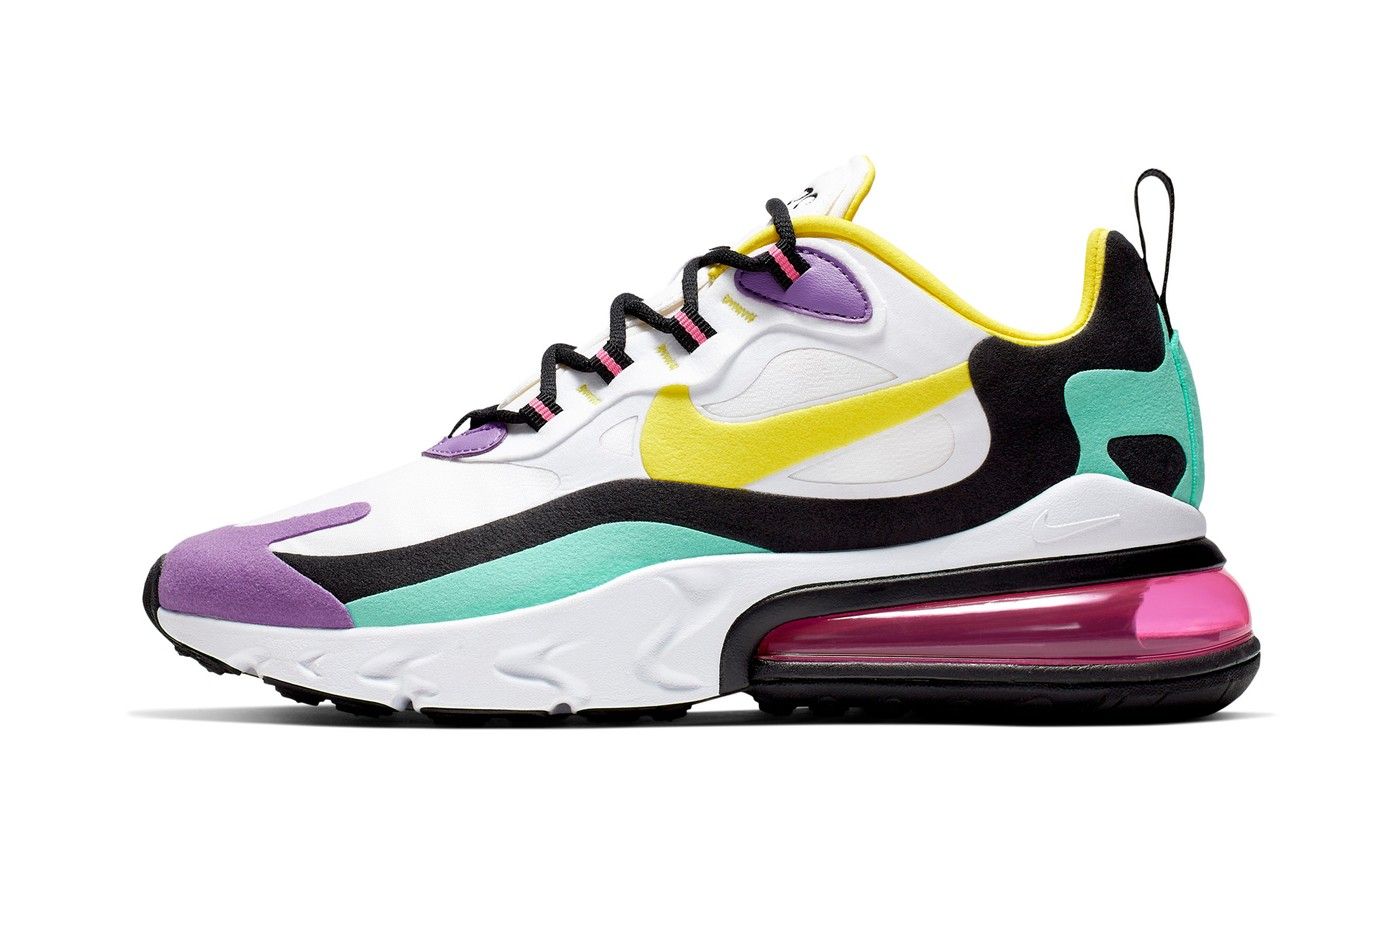 new concept d3fbd d0623 Introducing the Nike Air Max 270 React | The Source